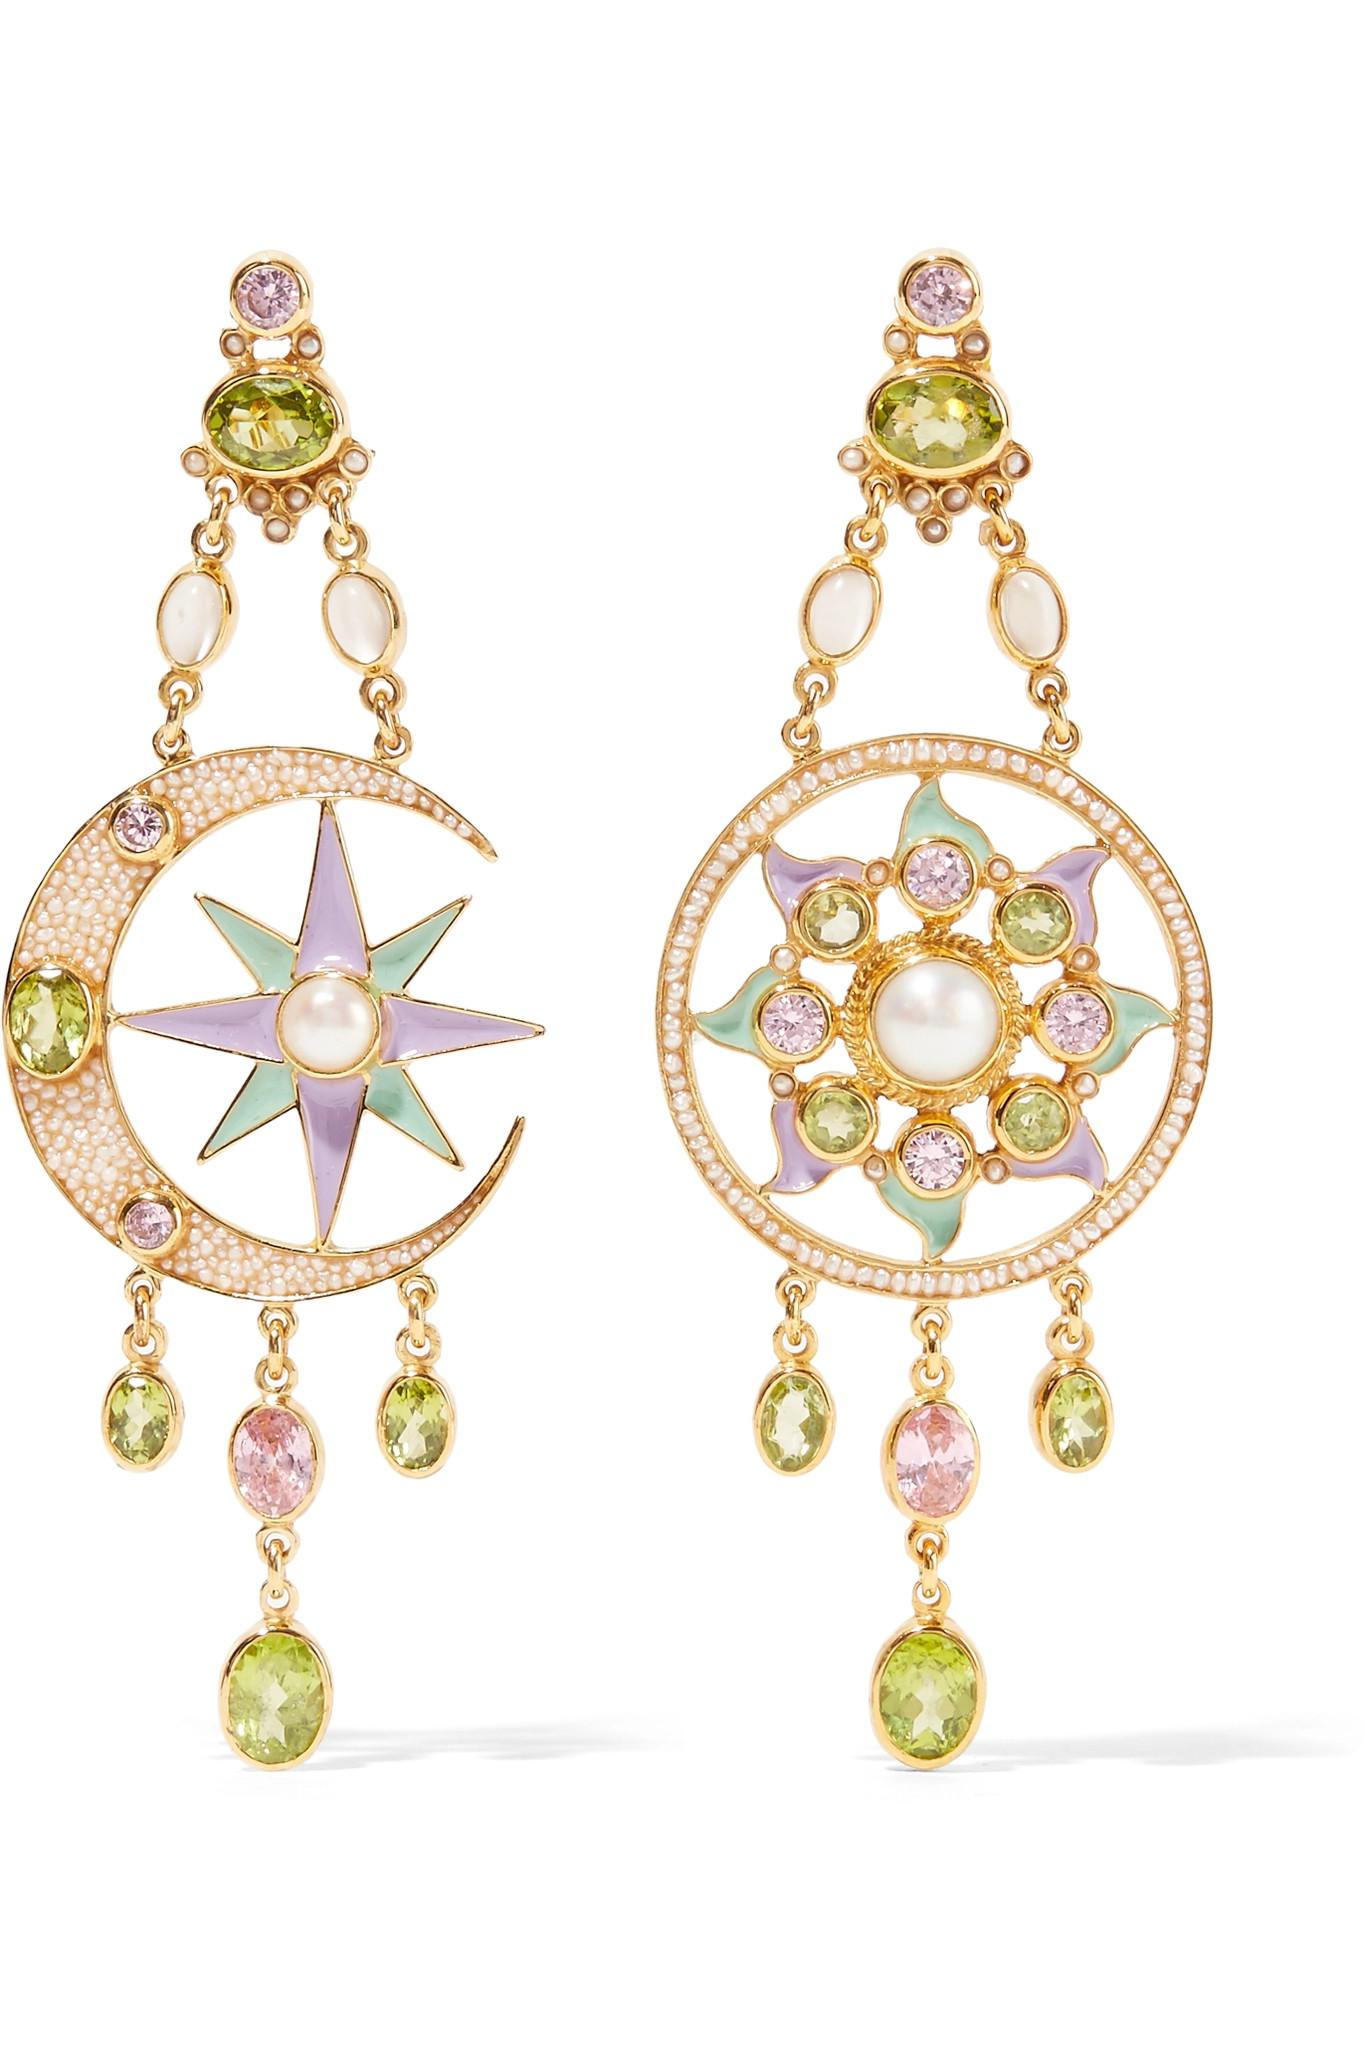 Percossi Papi Gold-plated And Enamel Multi-stone Earrings - Green LWE53hp